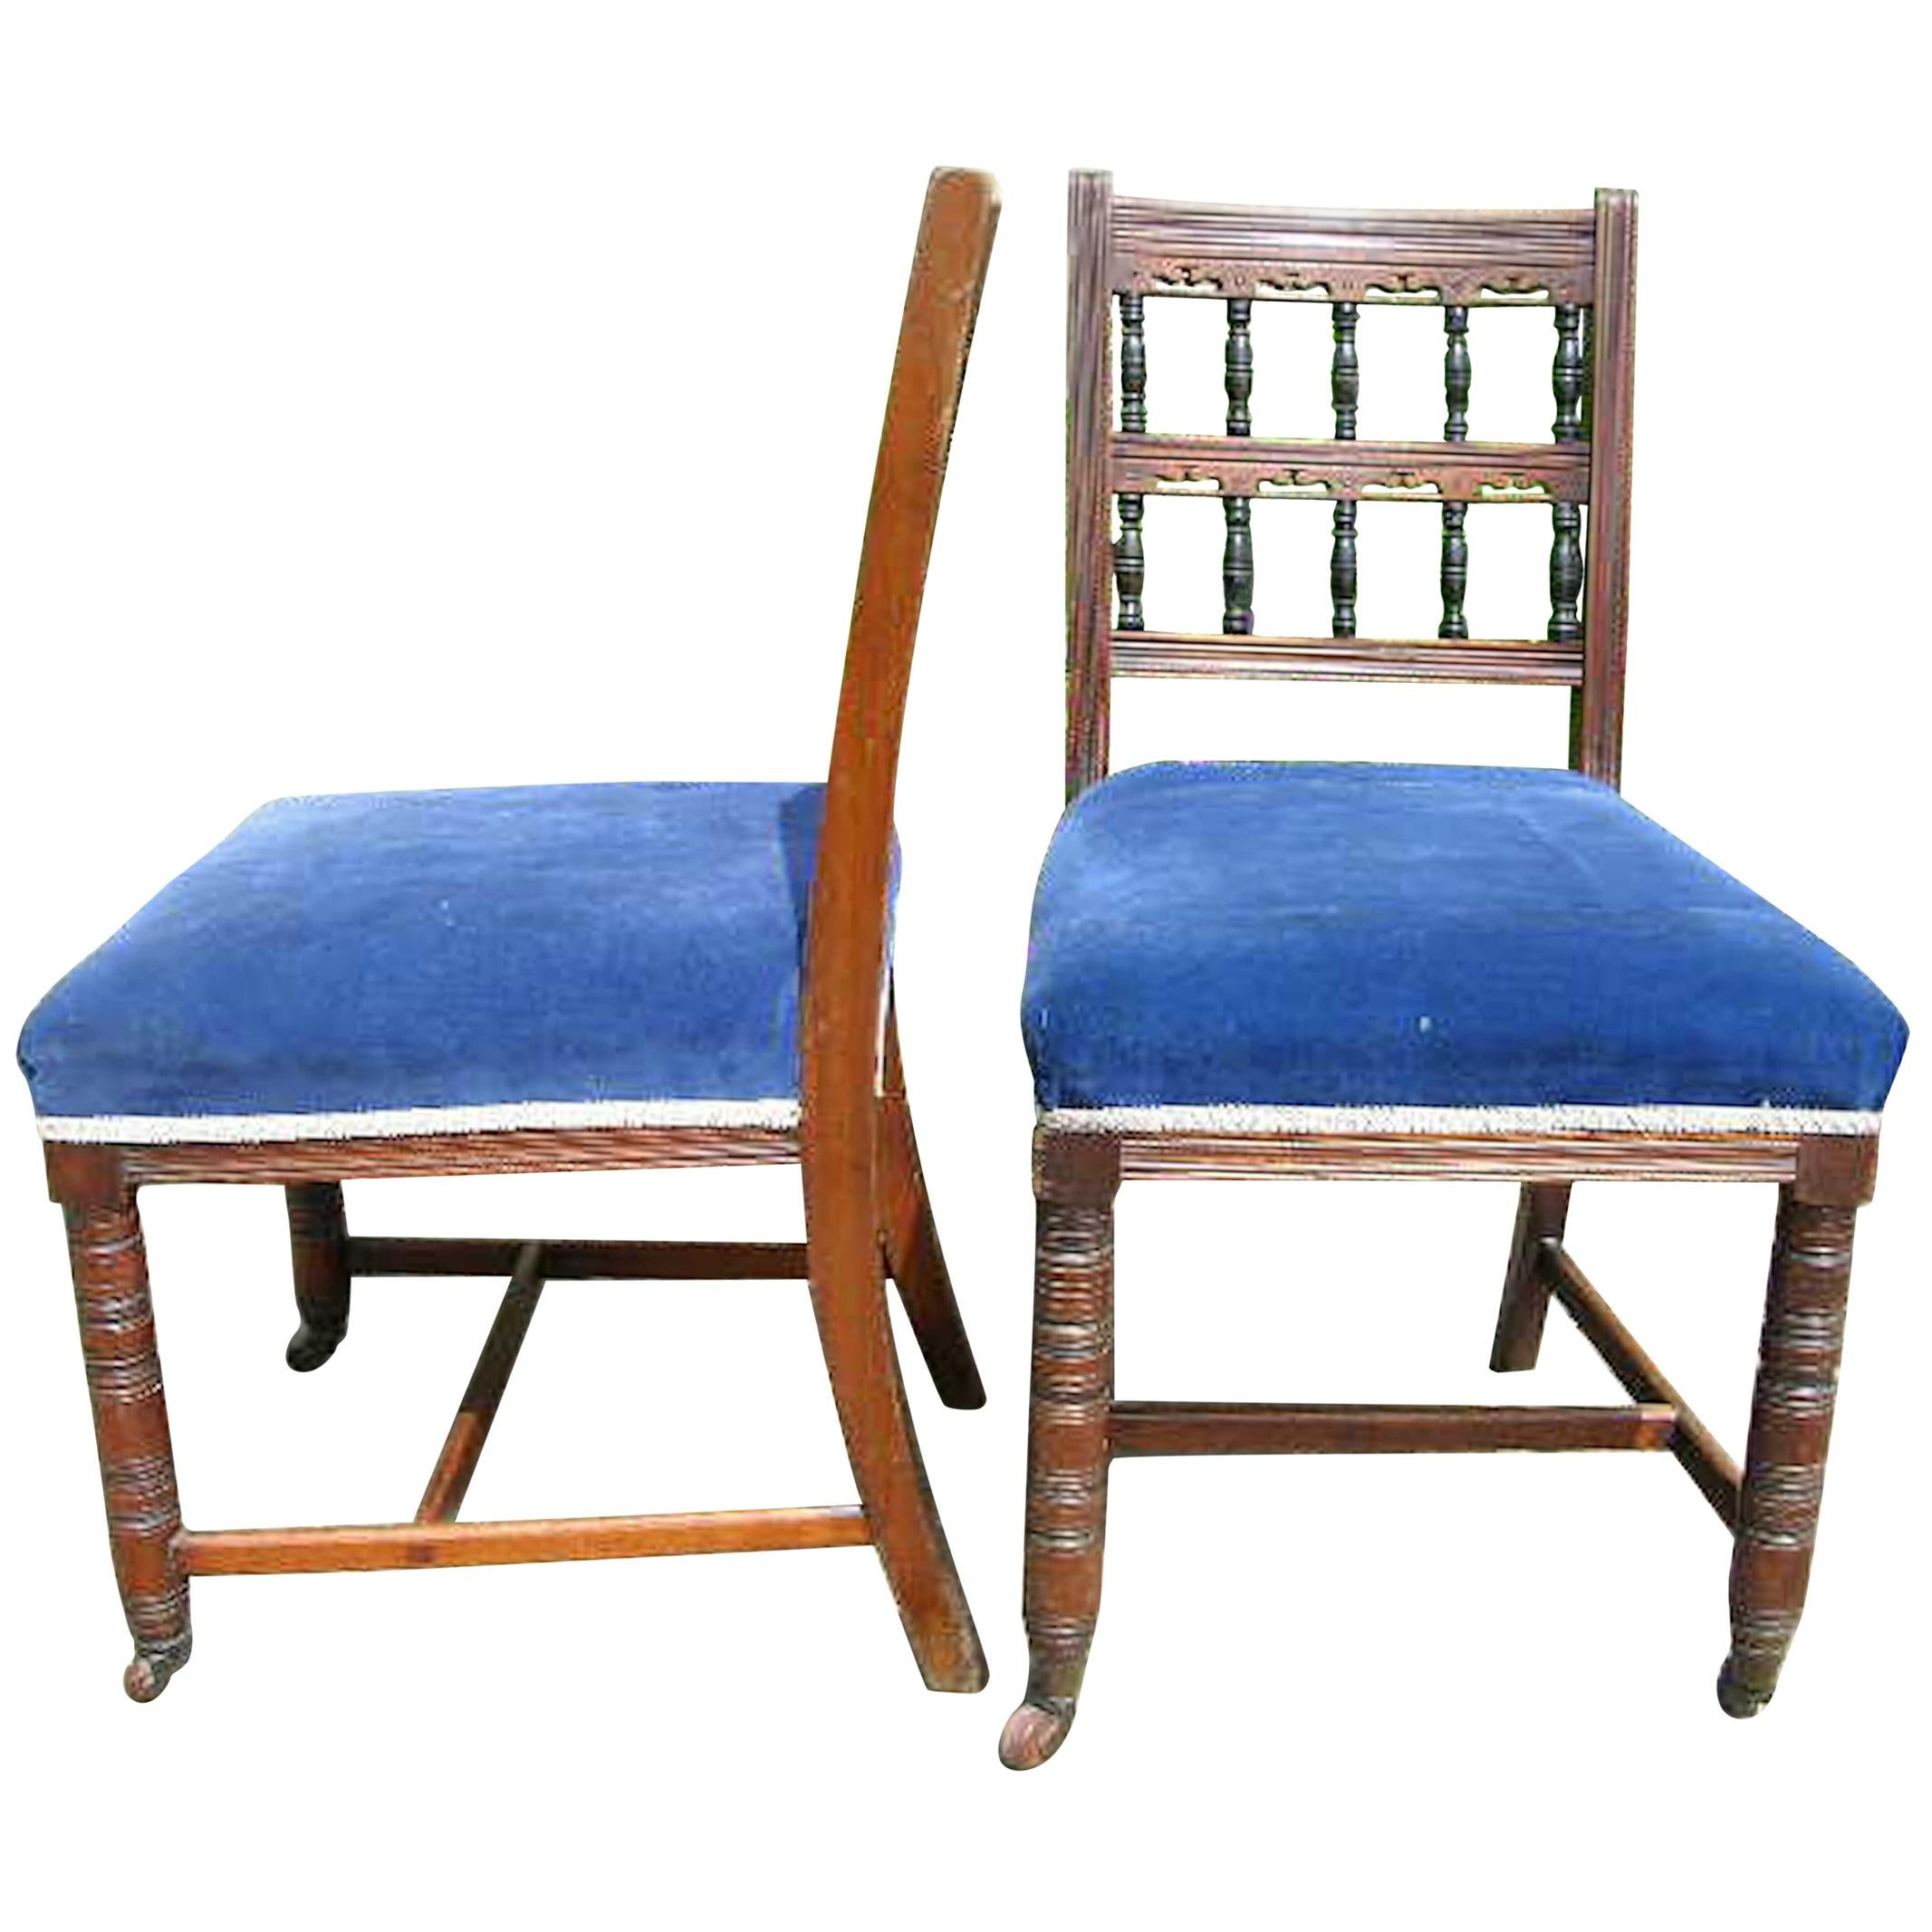 Bruce Talbert Gillows Attri, a Pair of Aesthetic Movement Oak Upholstered Chairs